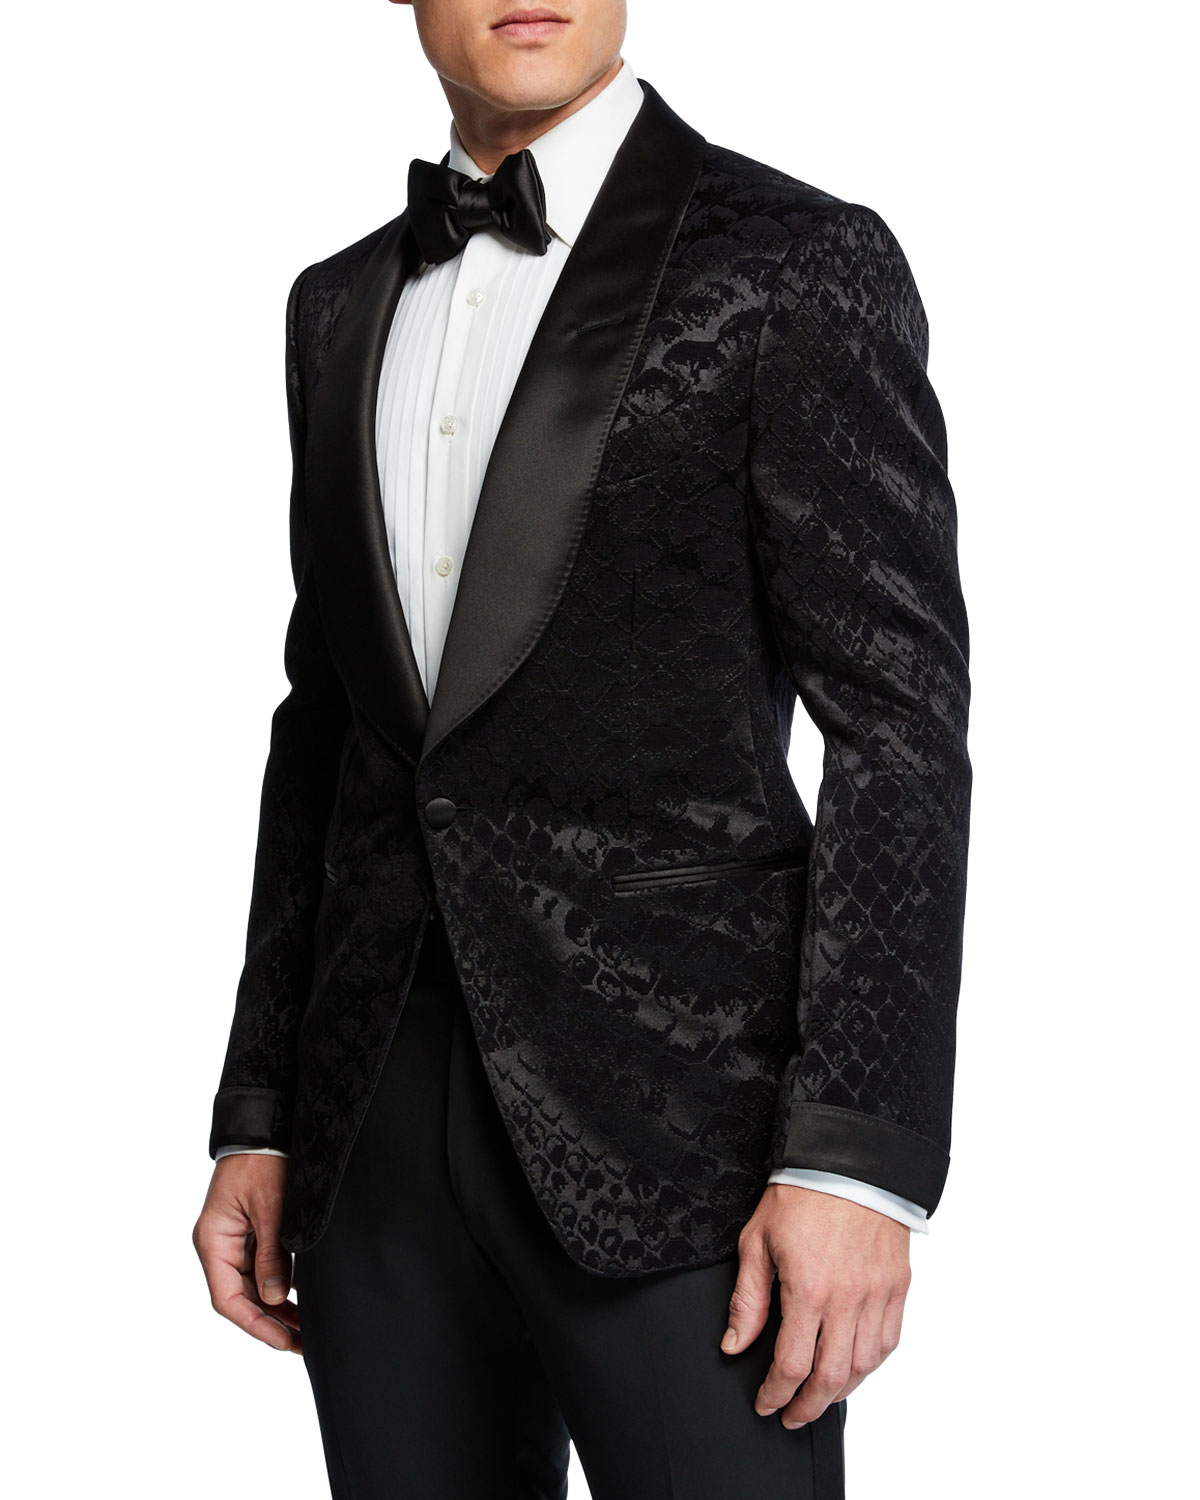 quality products new high quality bright n colour Men's Shelton Snake-Print Velvet Formal Jacket